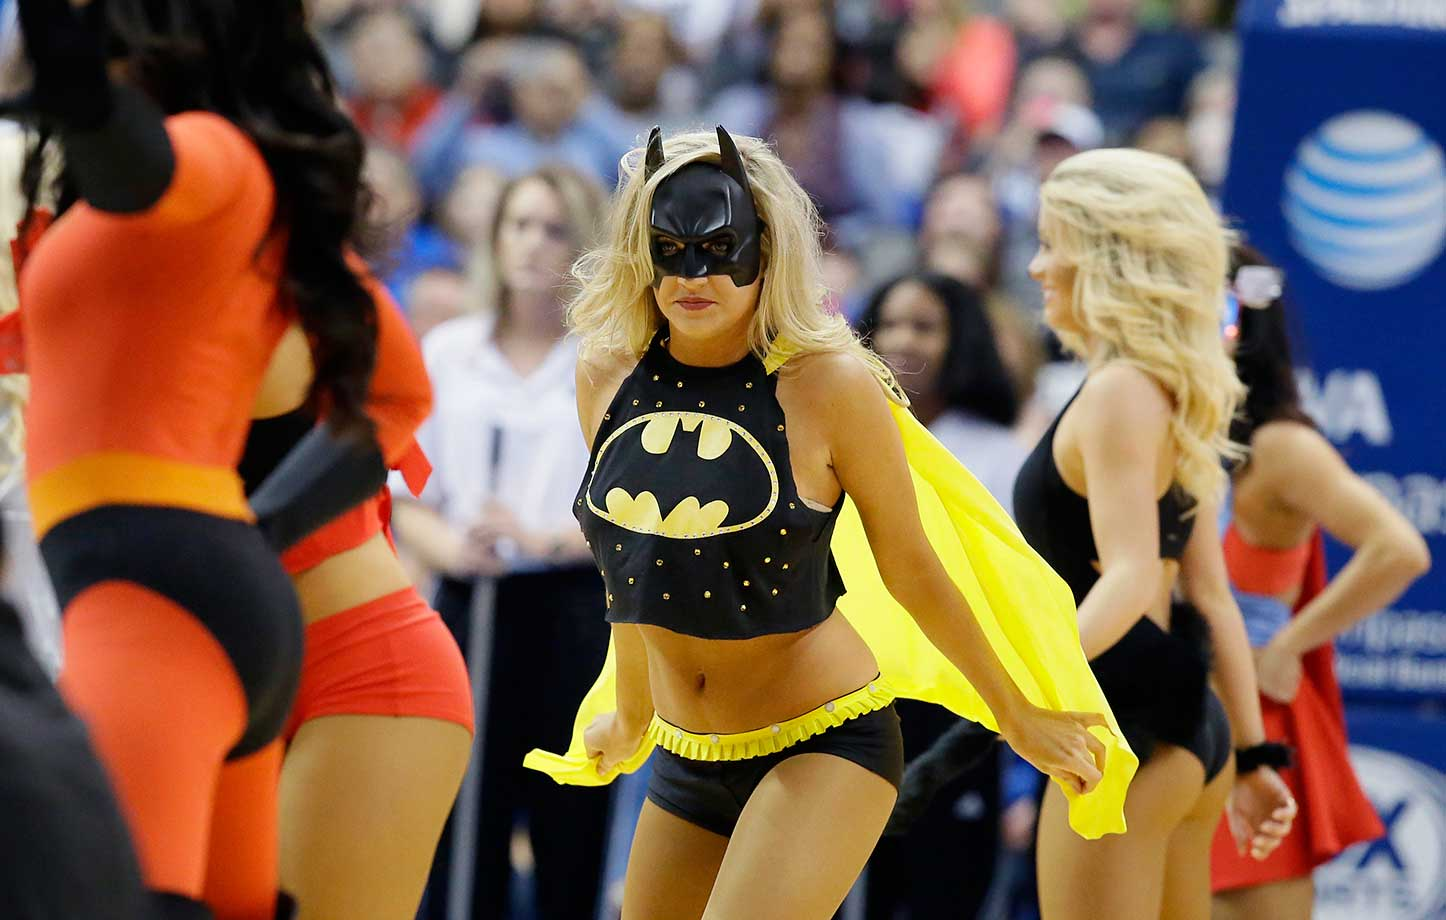 A Mavericks dancer is dressed up for Super Hero Night in Dallas.